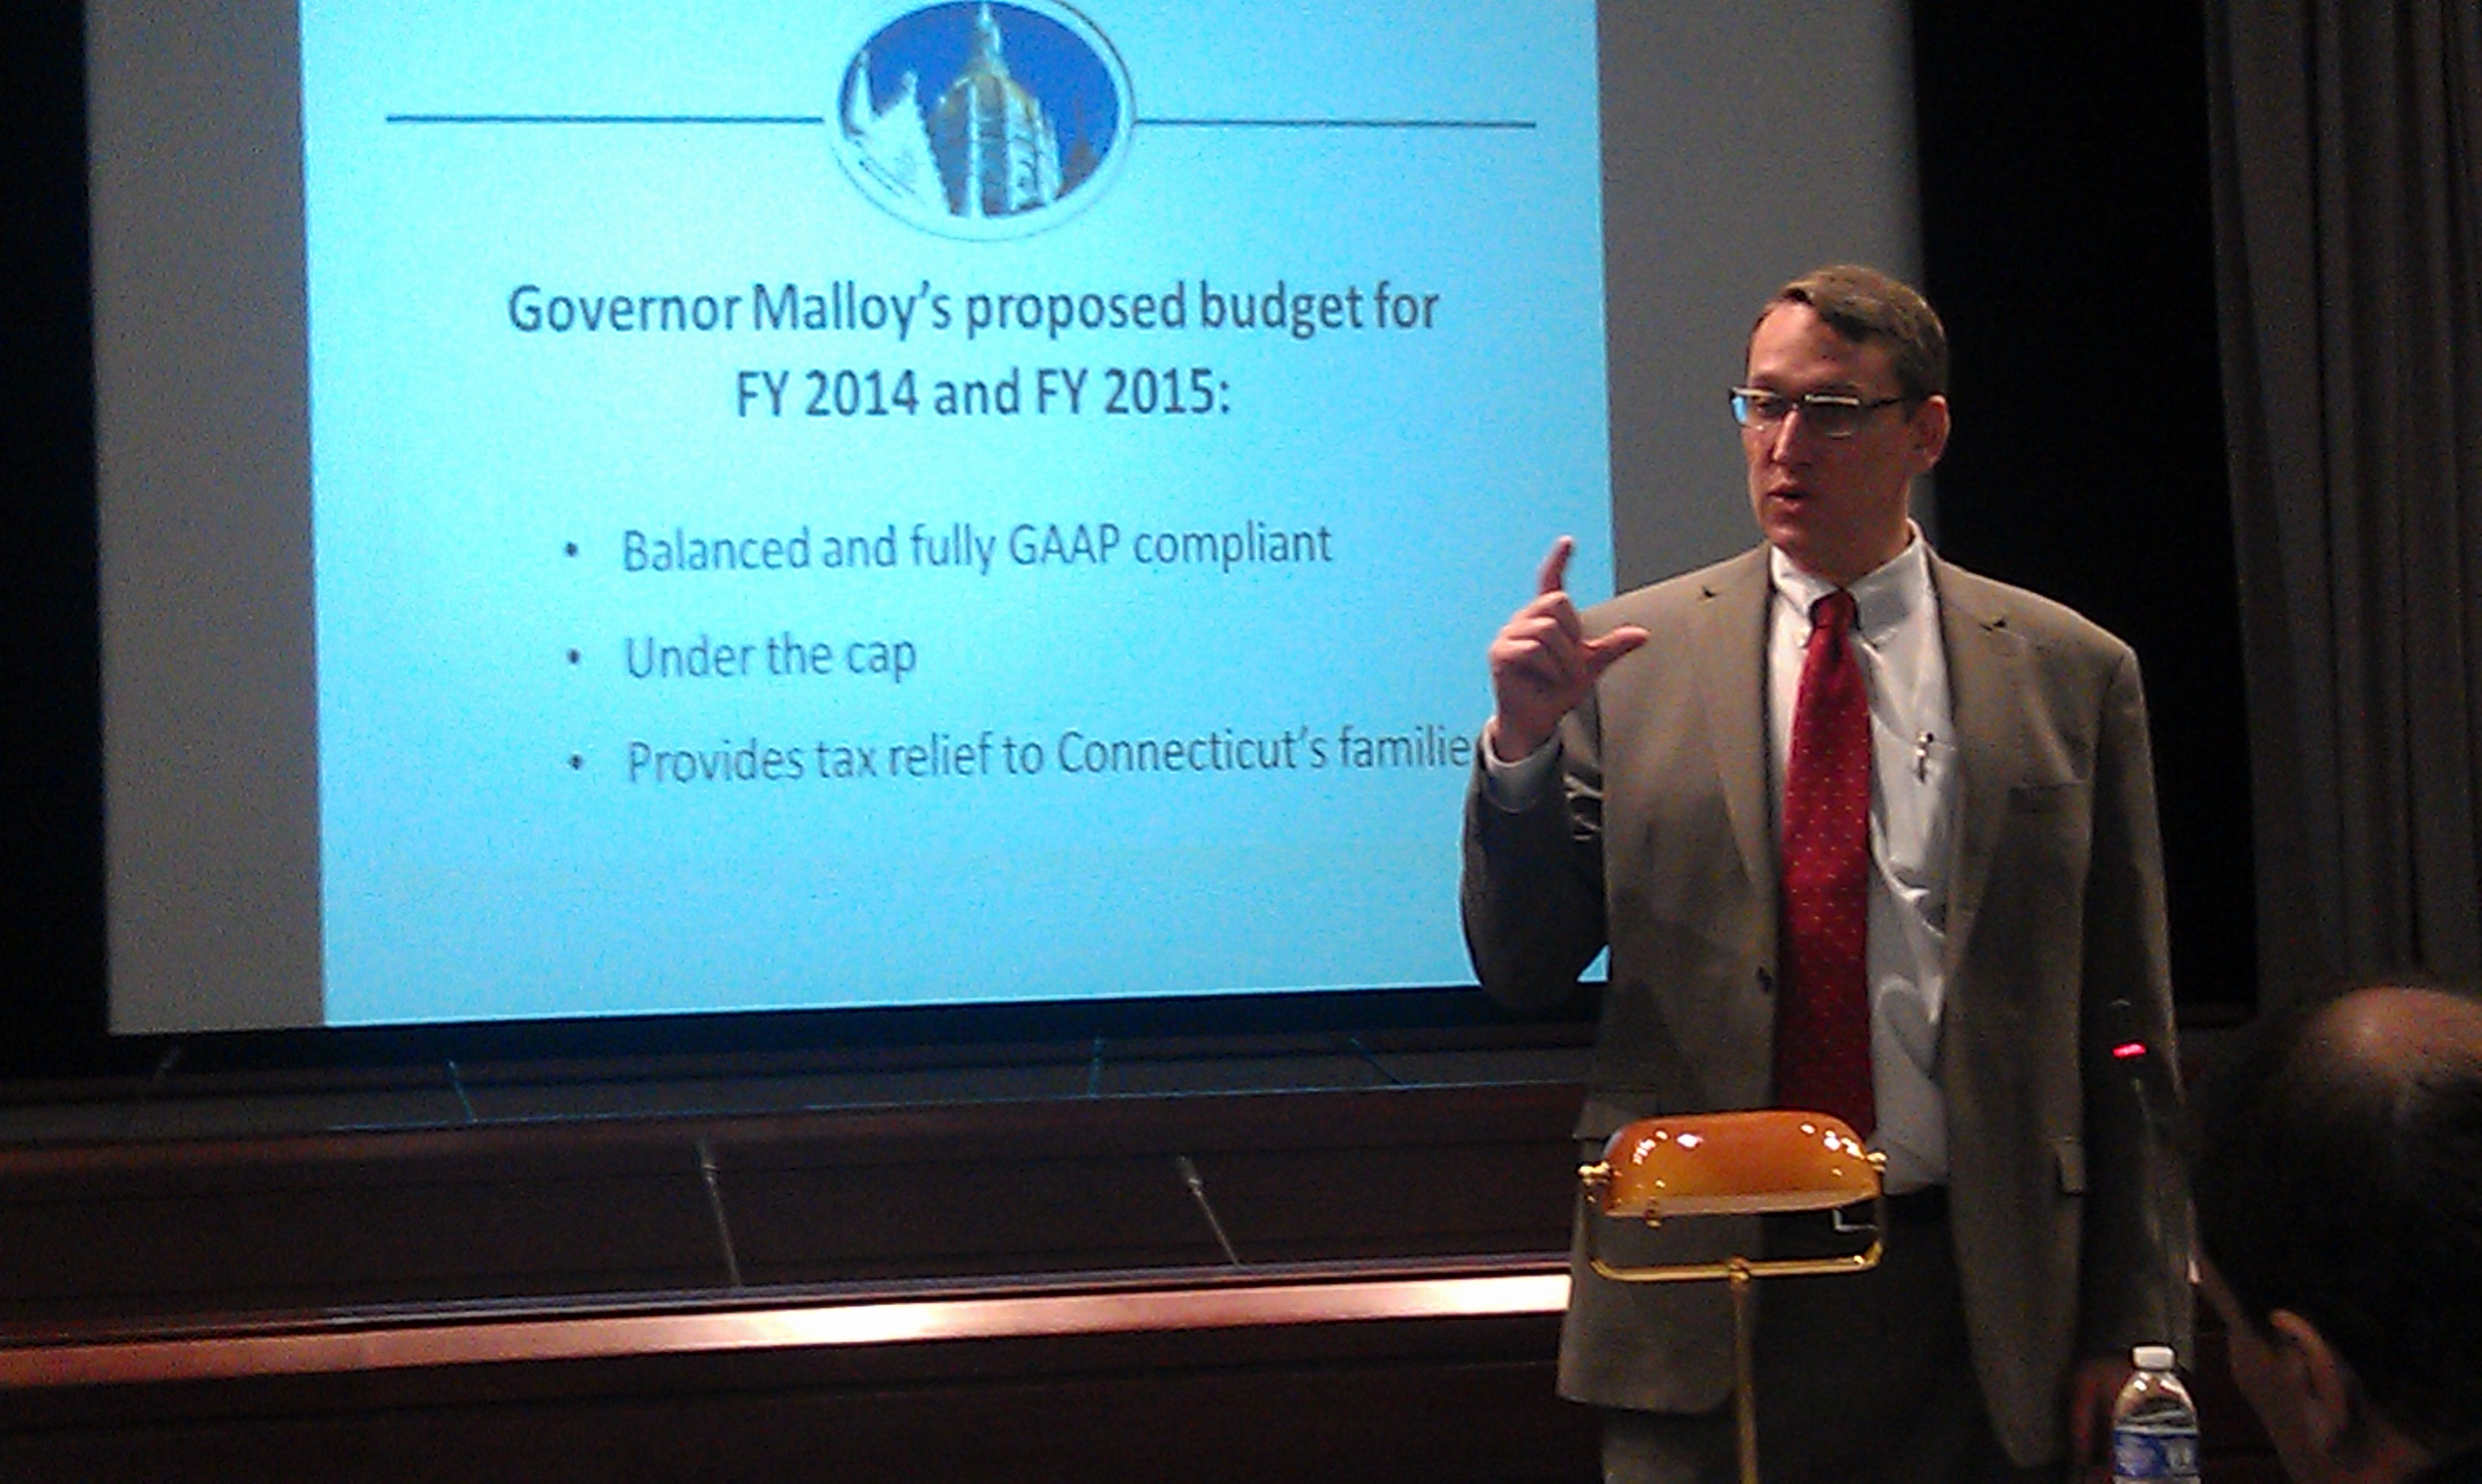 Malloy budgets exceed spending cap by $1.2 billion